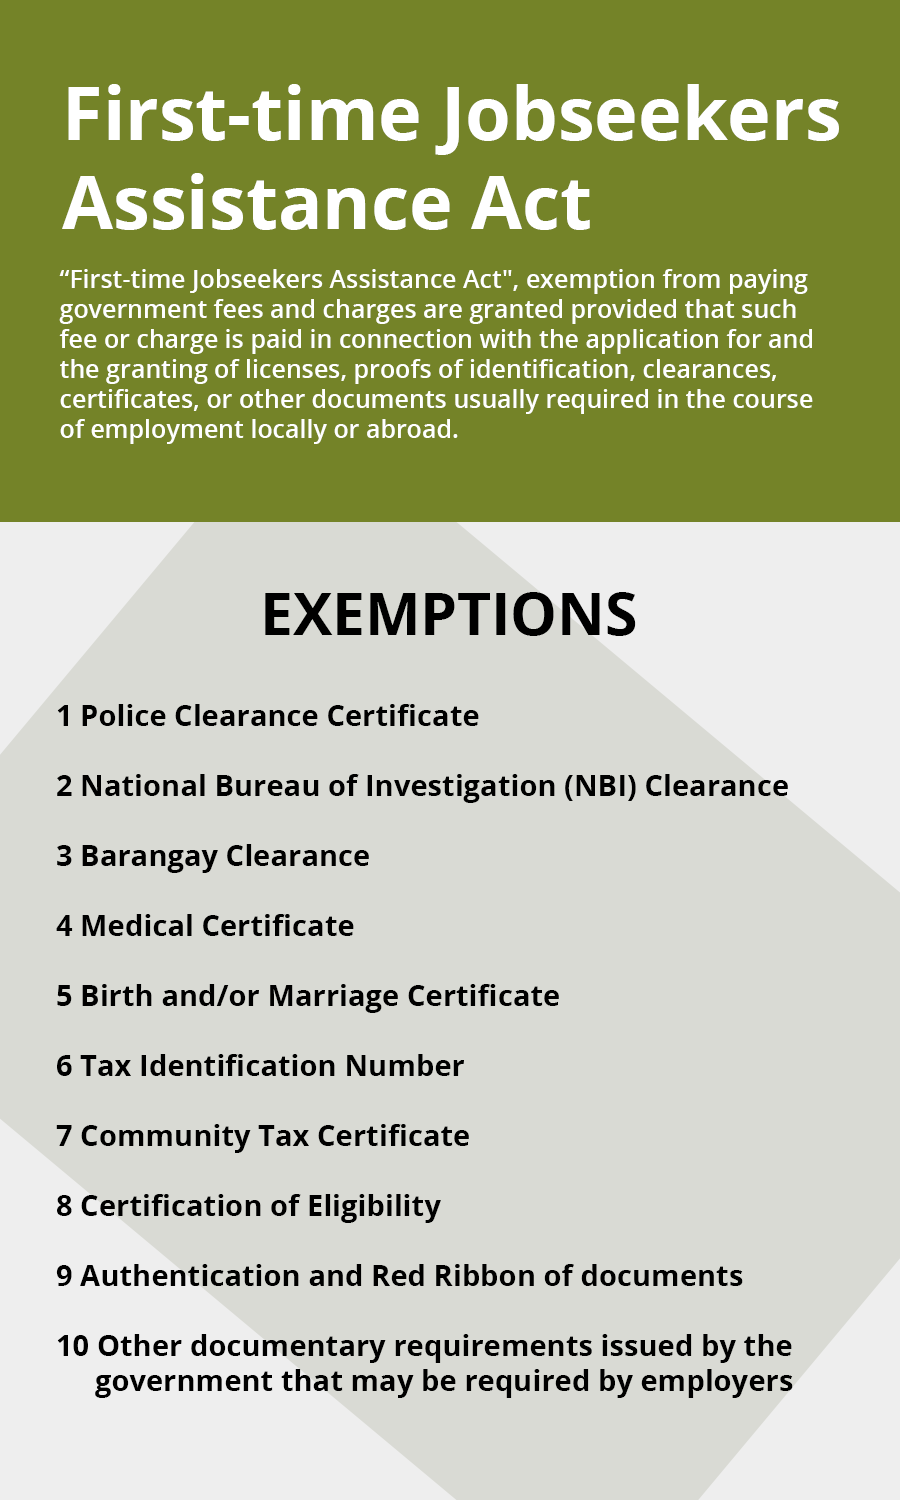 Exemption from Paying Government Fees and Charges for First